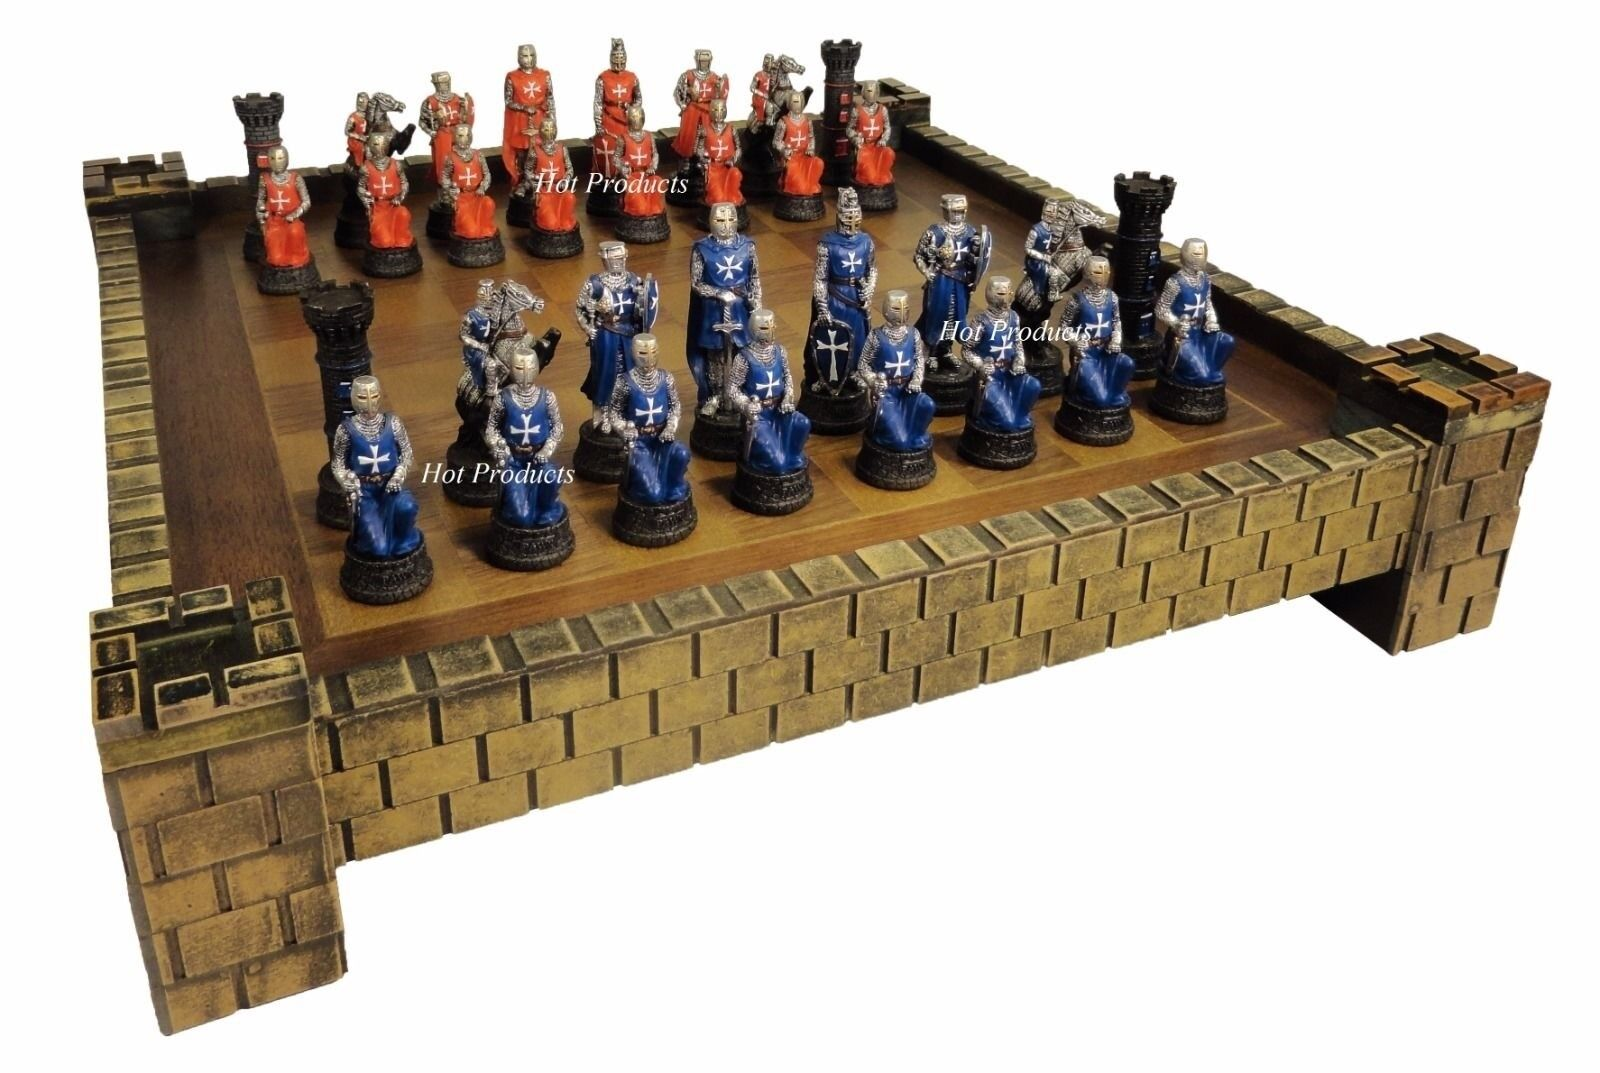 MEDIEVAL TIMES CRUSADES WARRIOR rosso & blu chess set W   17  CASTLE tavola  economico